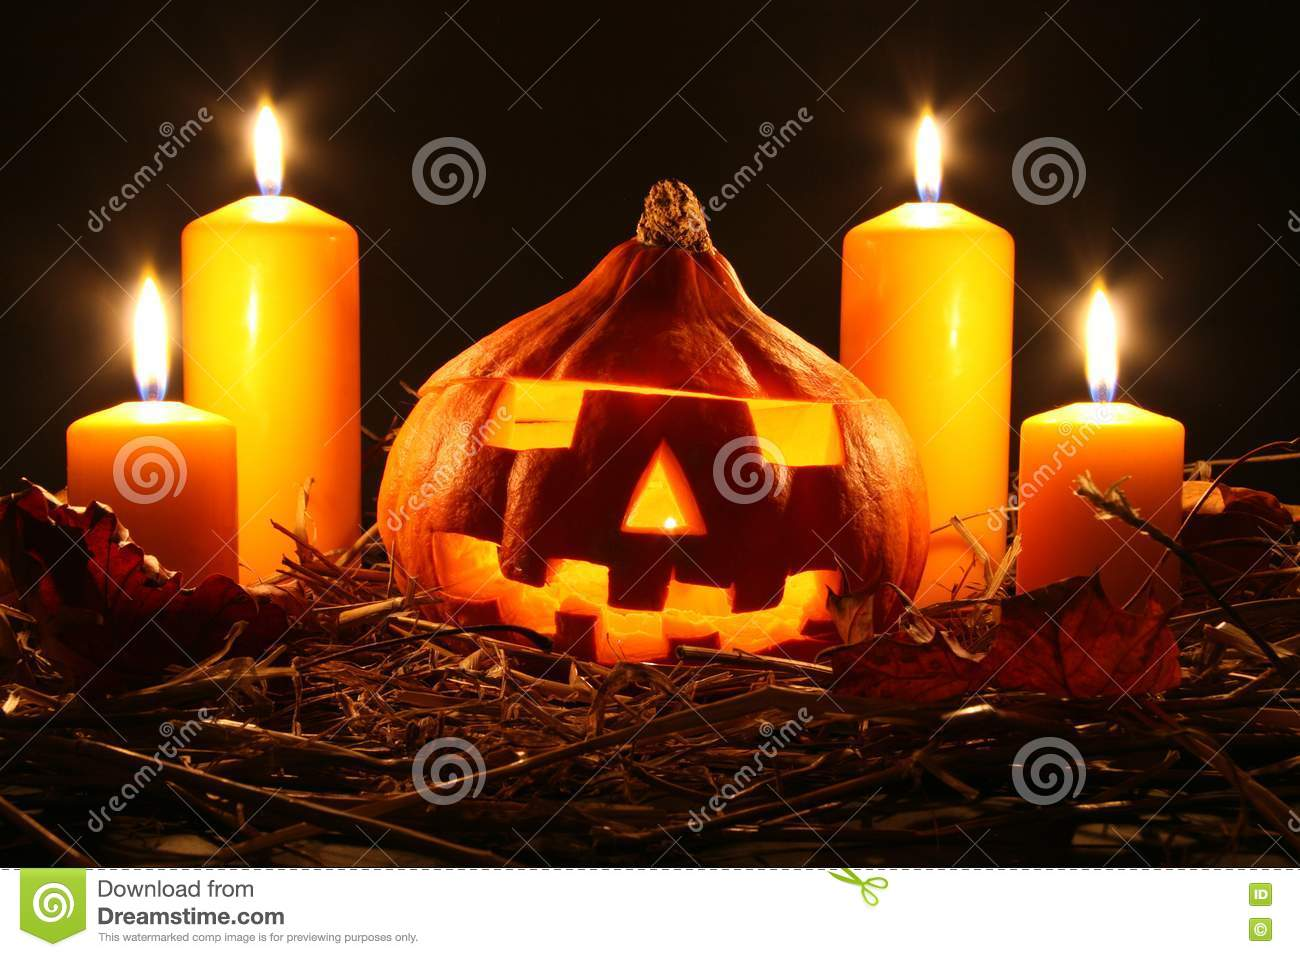 Halloween Pumpkin And Candles Royalty Free Stock Images ...